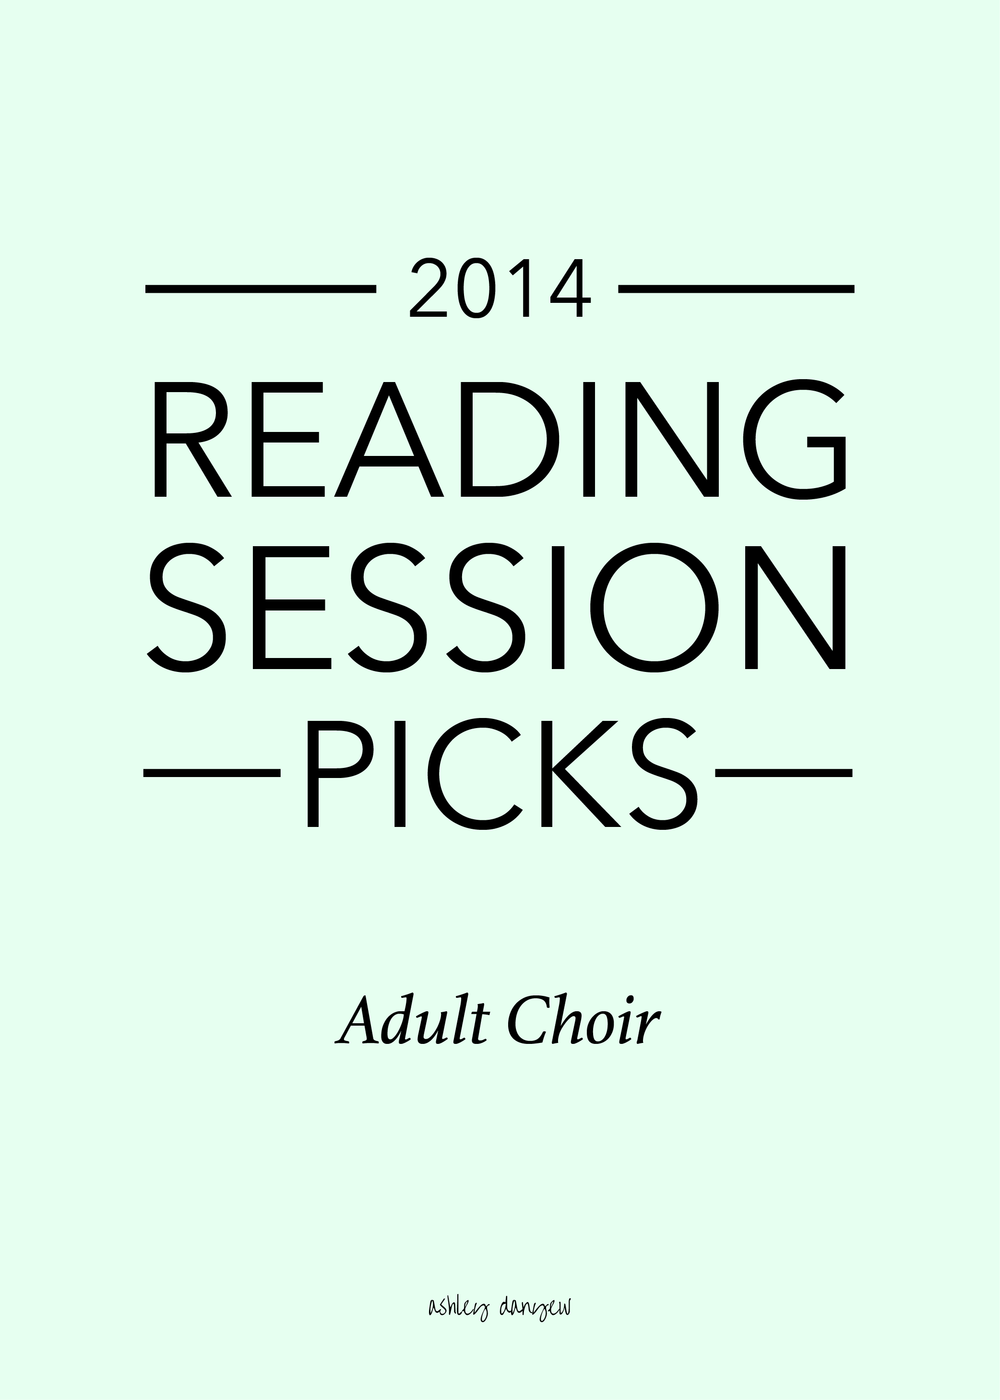 Copy of 2014 Reading Session Picks: Adult Choir